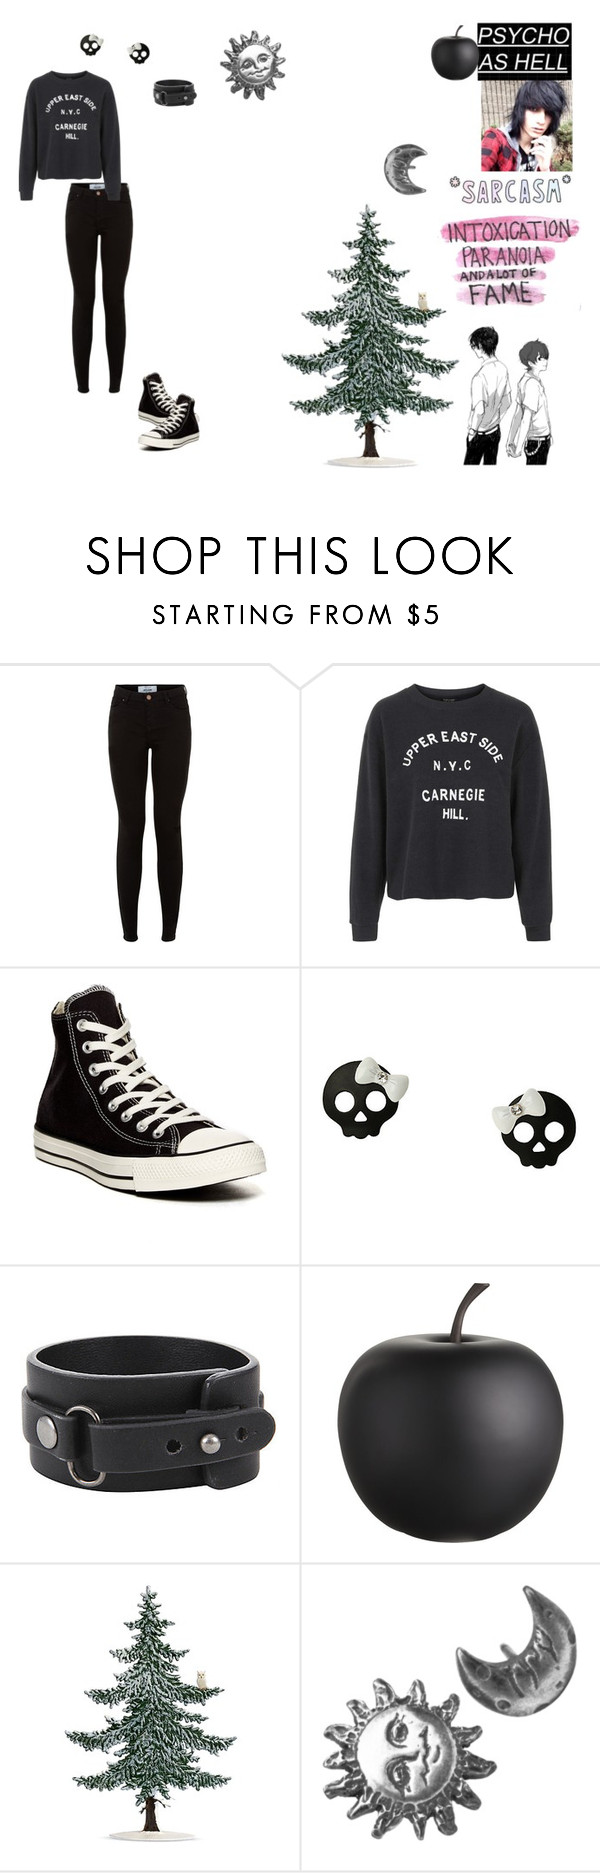 """Calling it a day~"" by caught-in-a-million-dreams ❤ liked on Polyvore featuring мода, Topshop, Converse, CB2 и Stefanie Sheehan Jewelry"